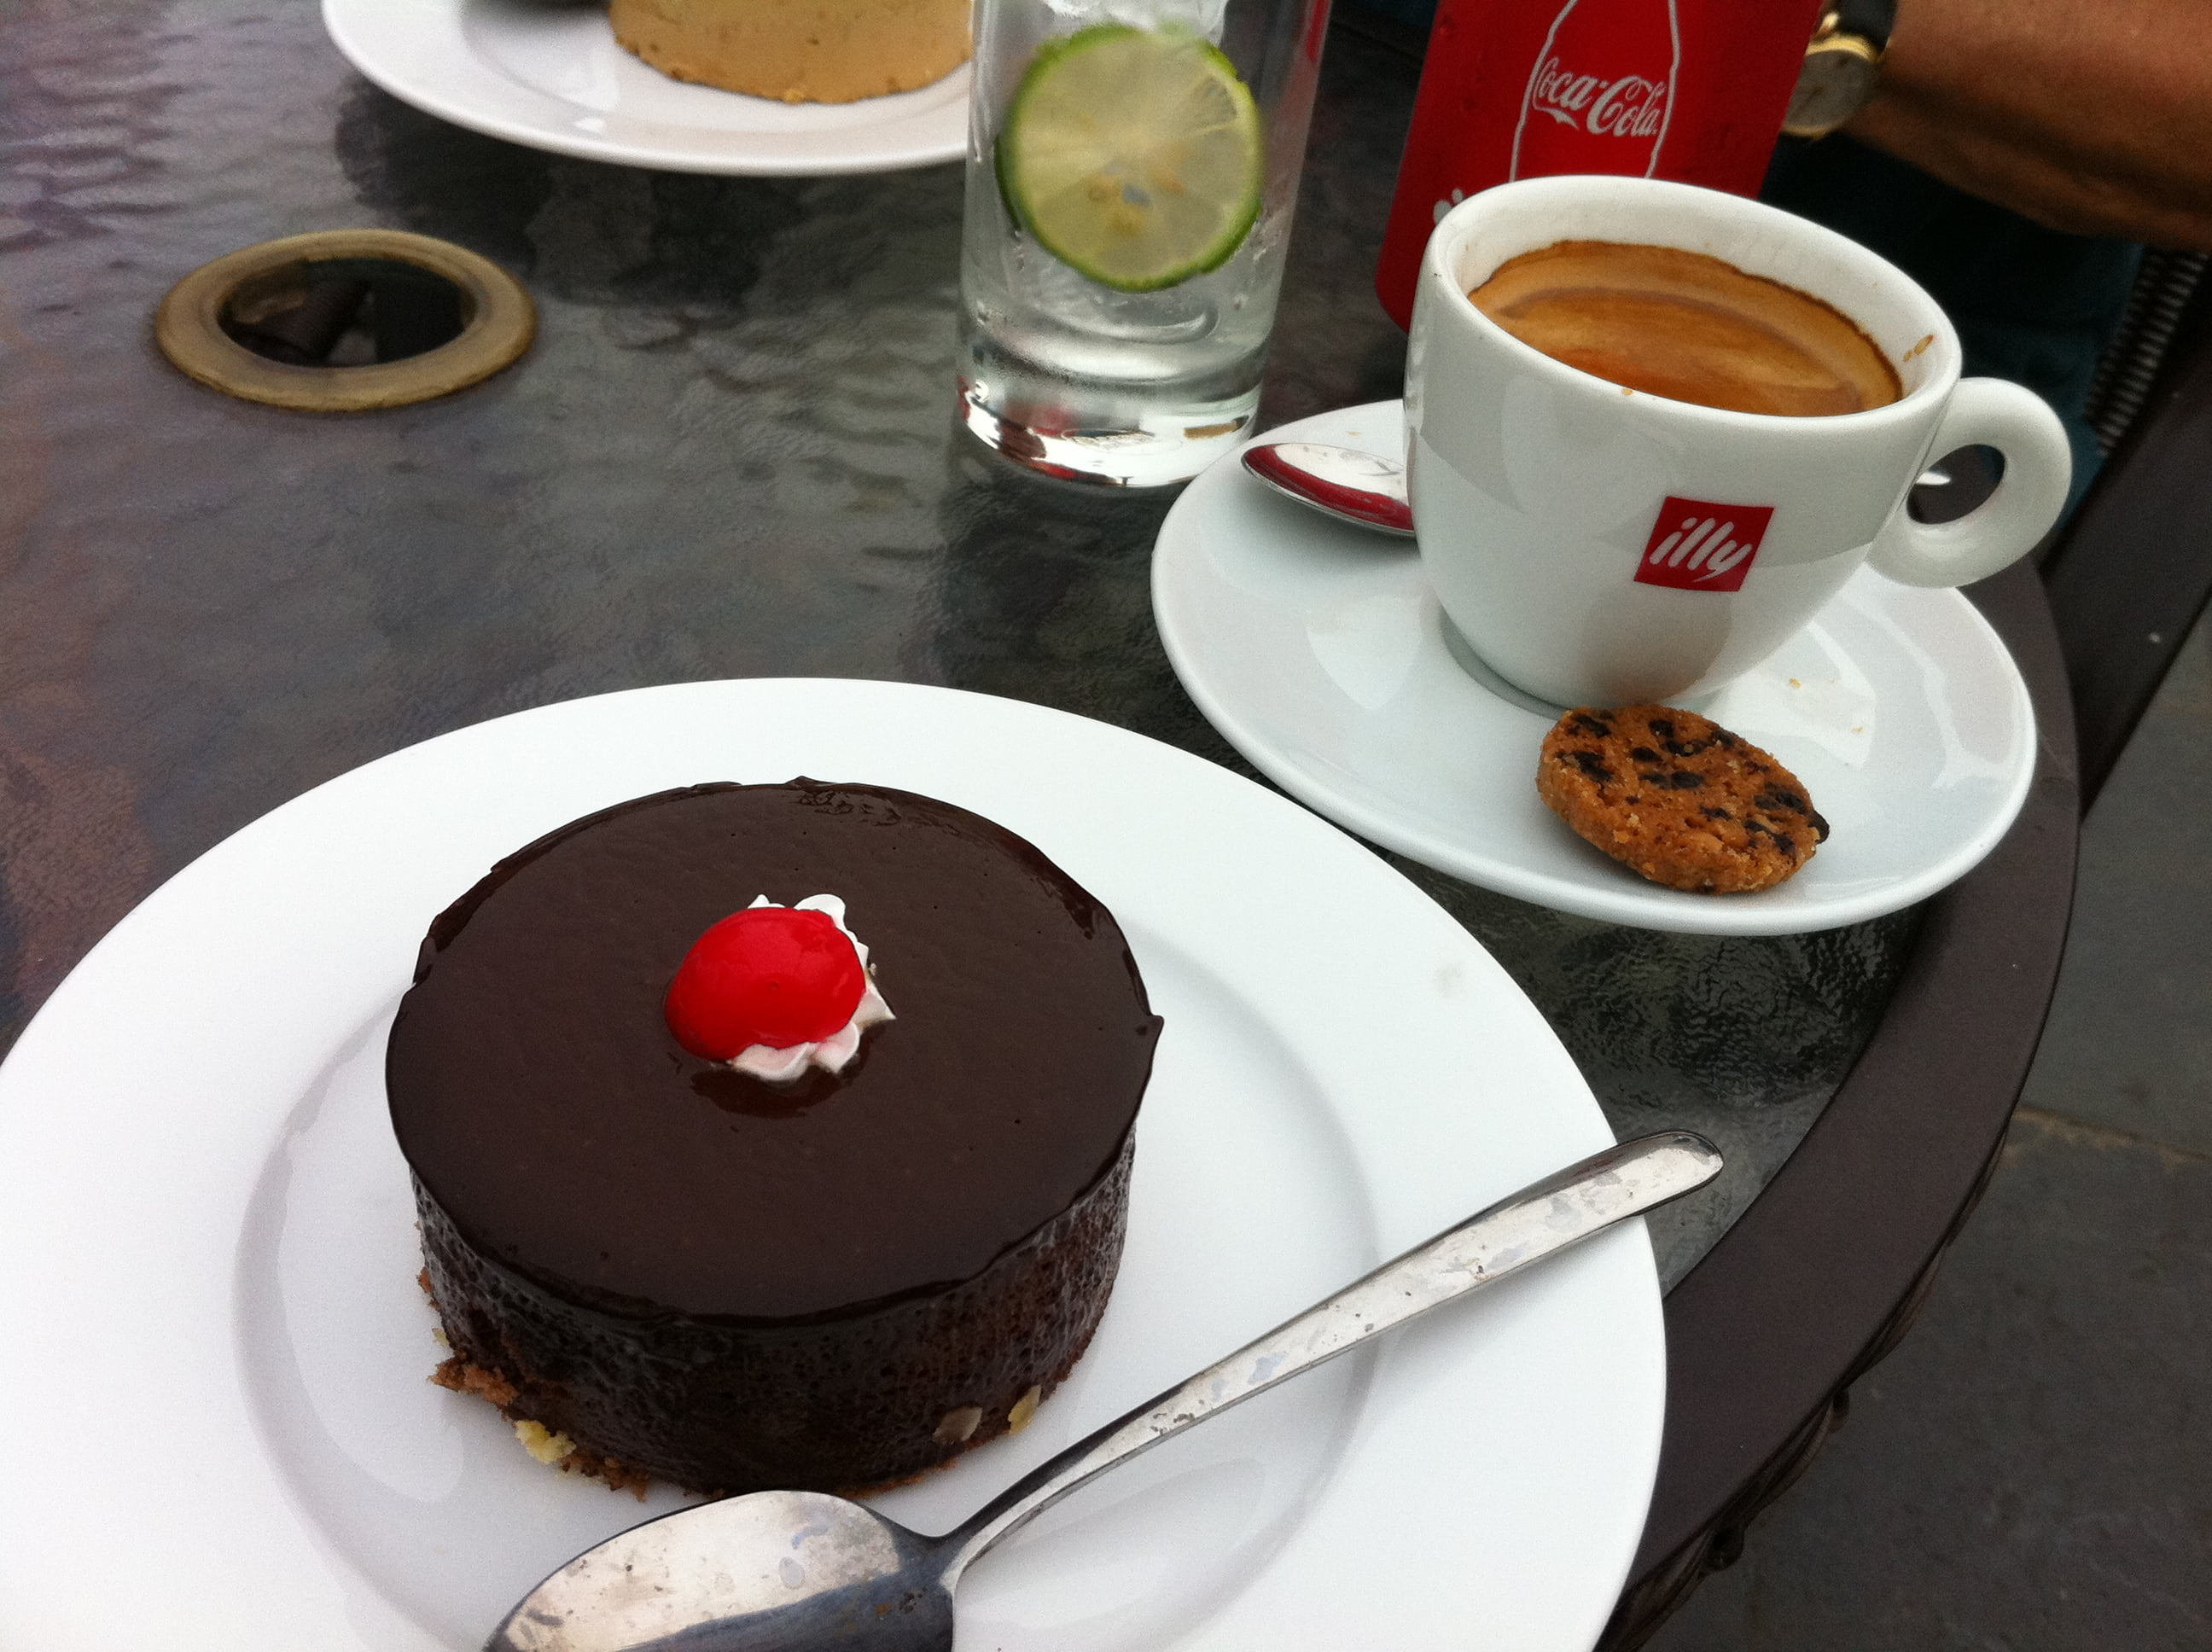 Illy Cafe in Hanoi